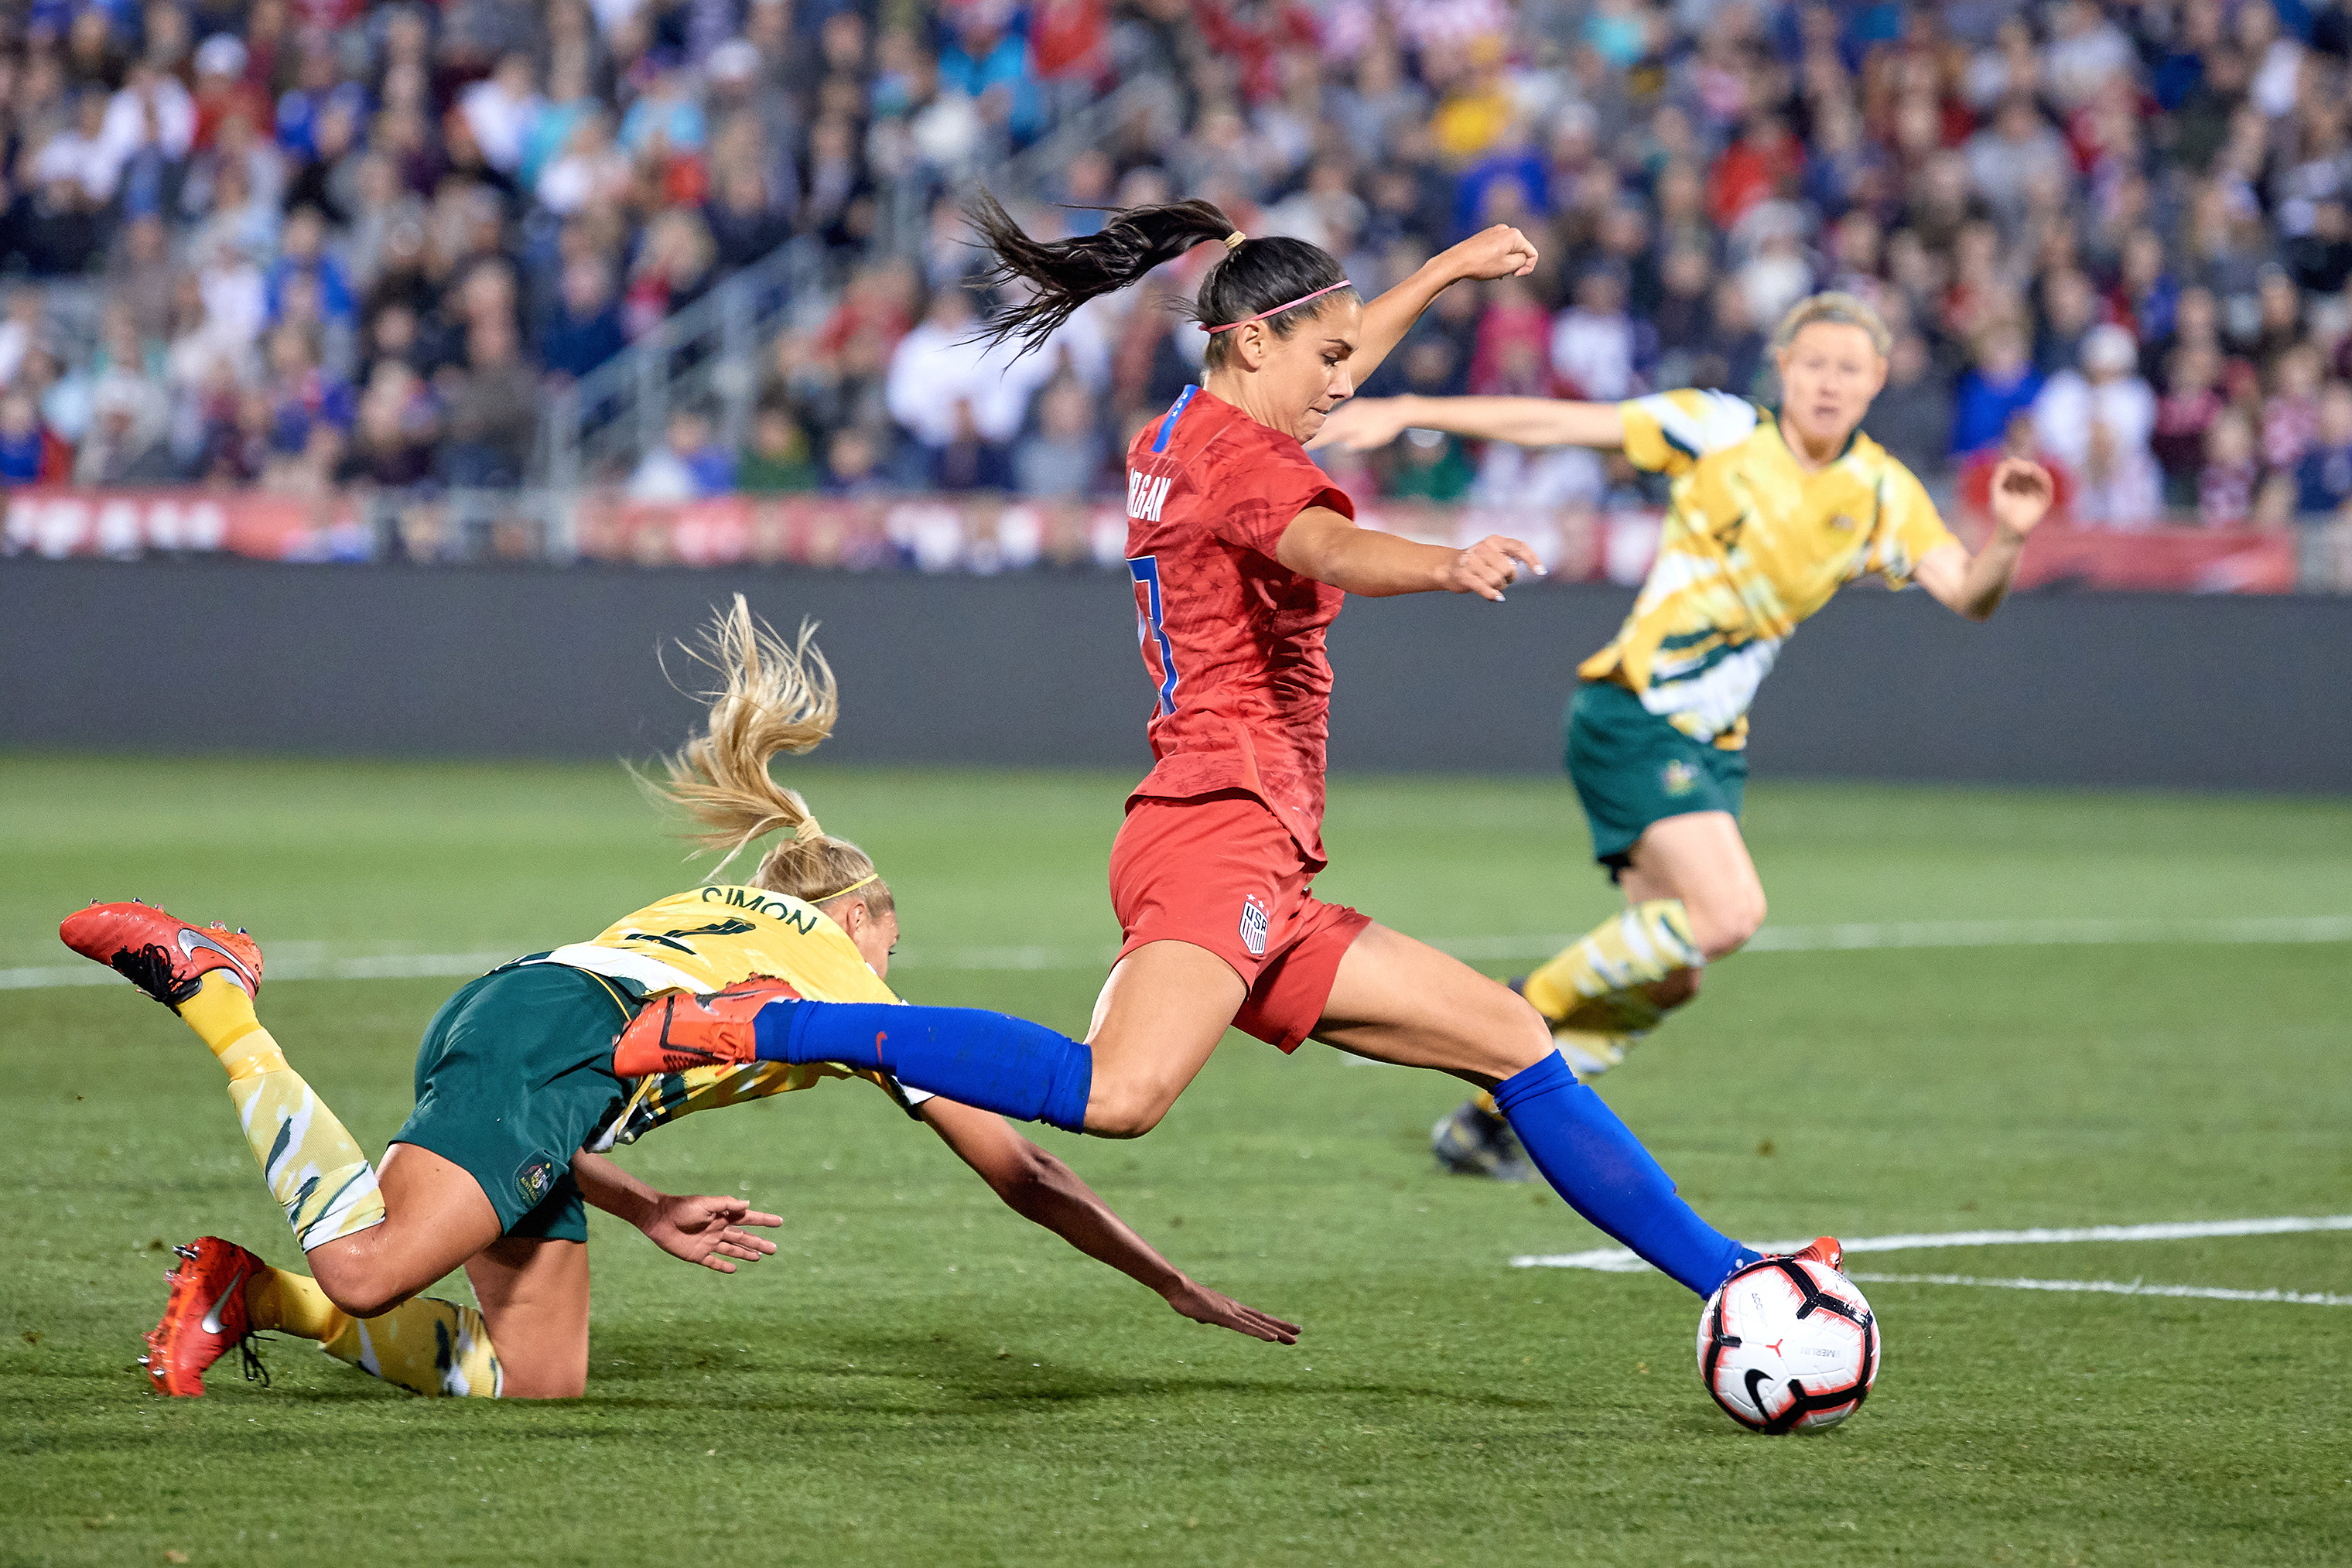 Morgan, during the game in which she scored her 100th career international goal this past April.